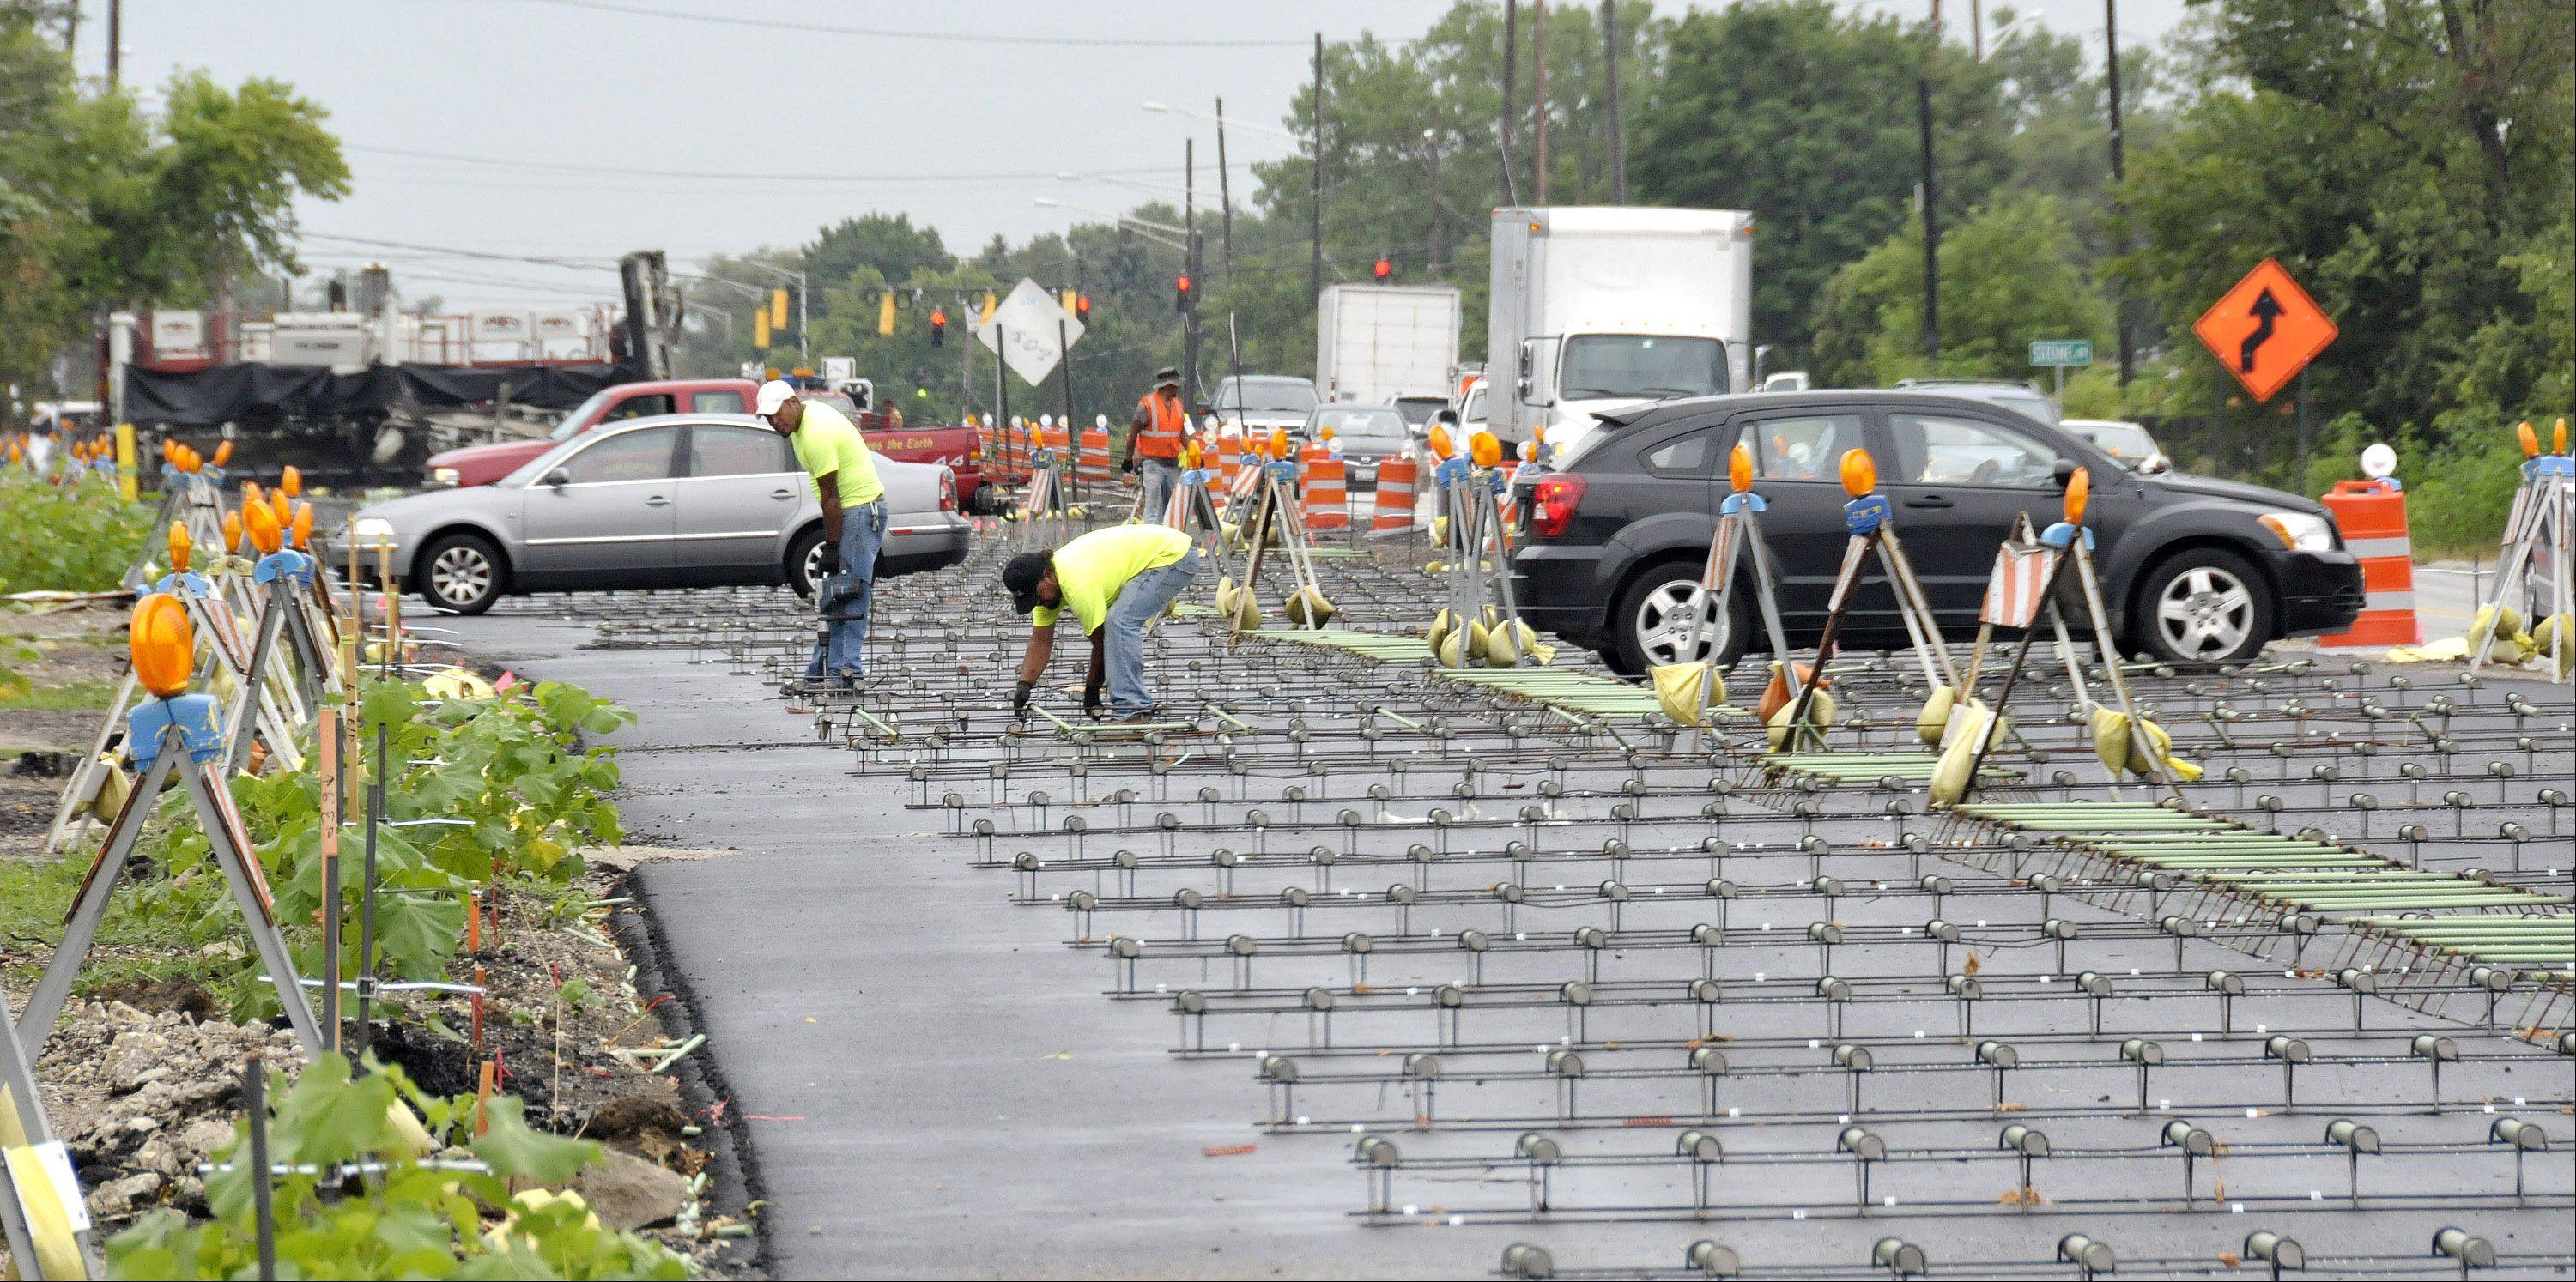 Work continues on resurfacing of Route 53 in Addison and Itasca. Here, workers install reinforcements for new pavement north of Army Trail Road.